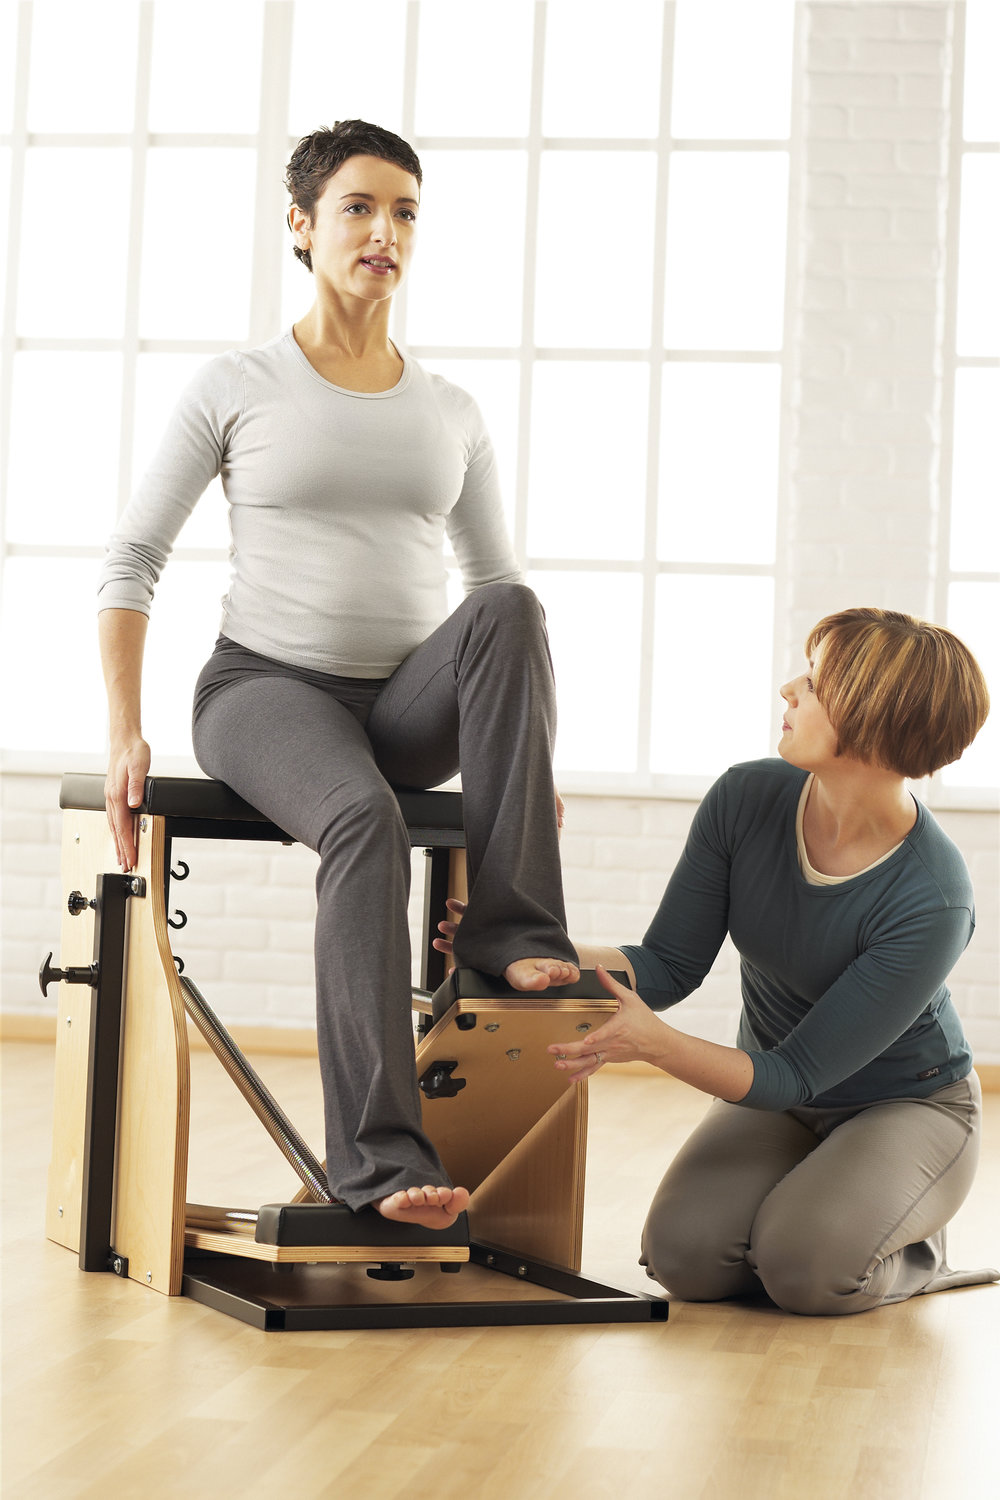 - The 'Chair' is also perfect for serving those who are unable to lie supine (on their backs), such as pregnant women or those with biomechanical issues.